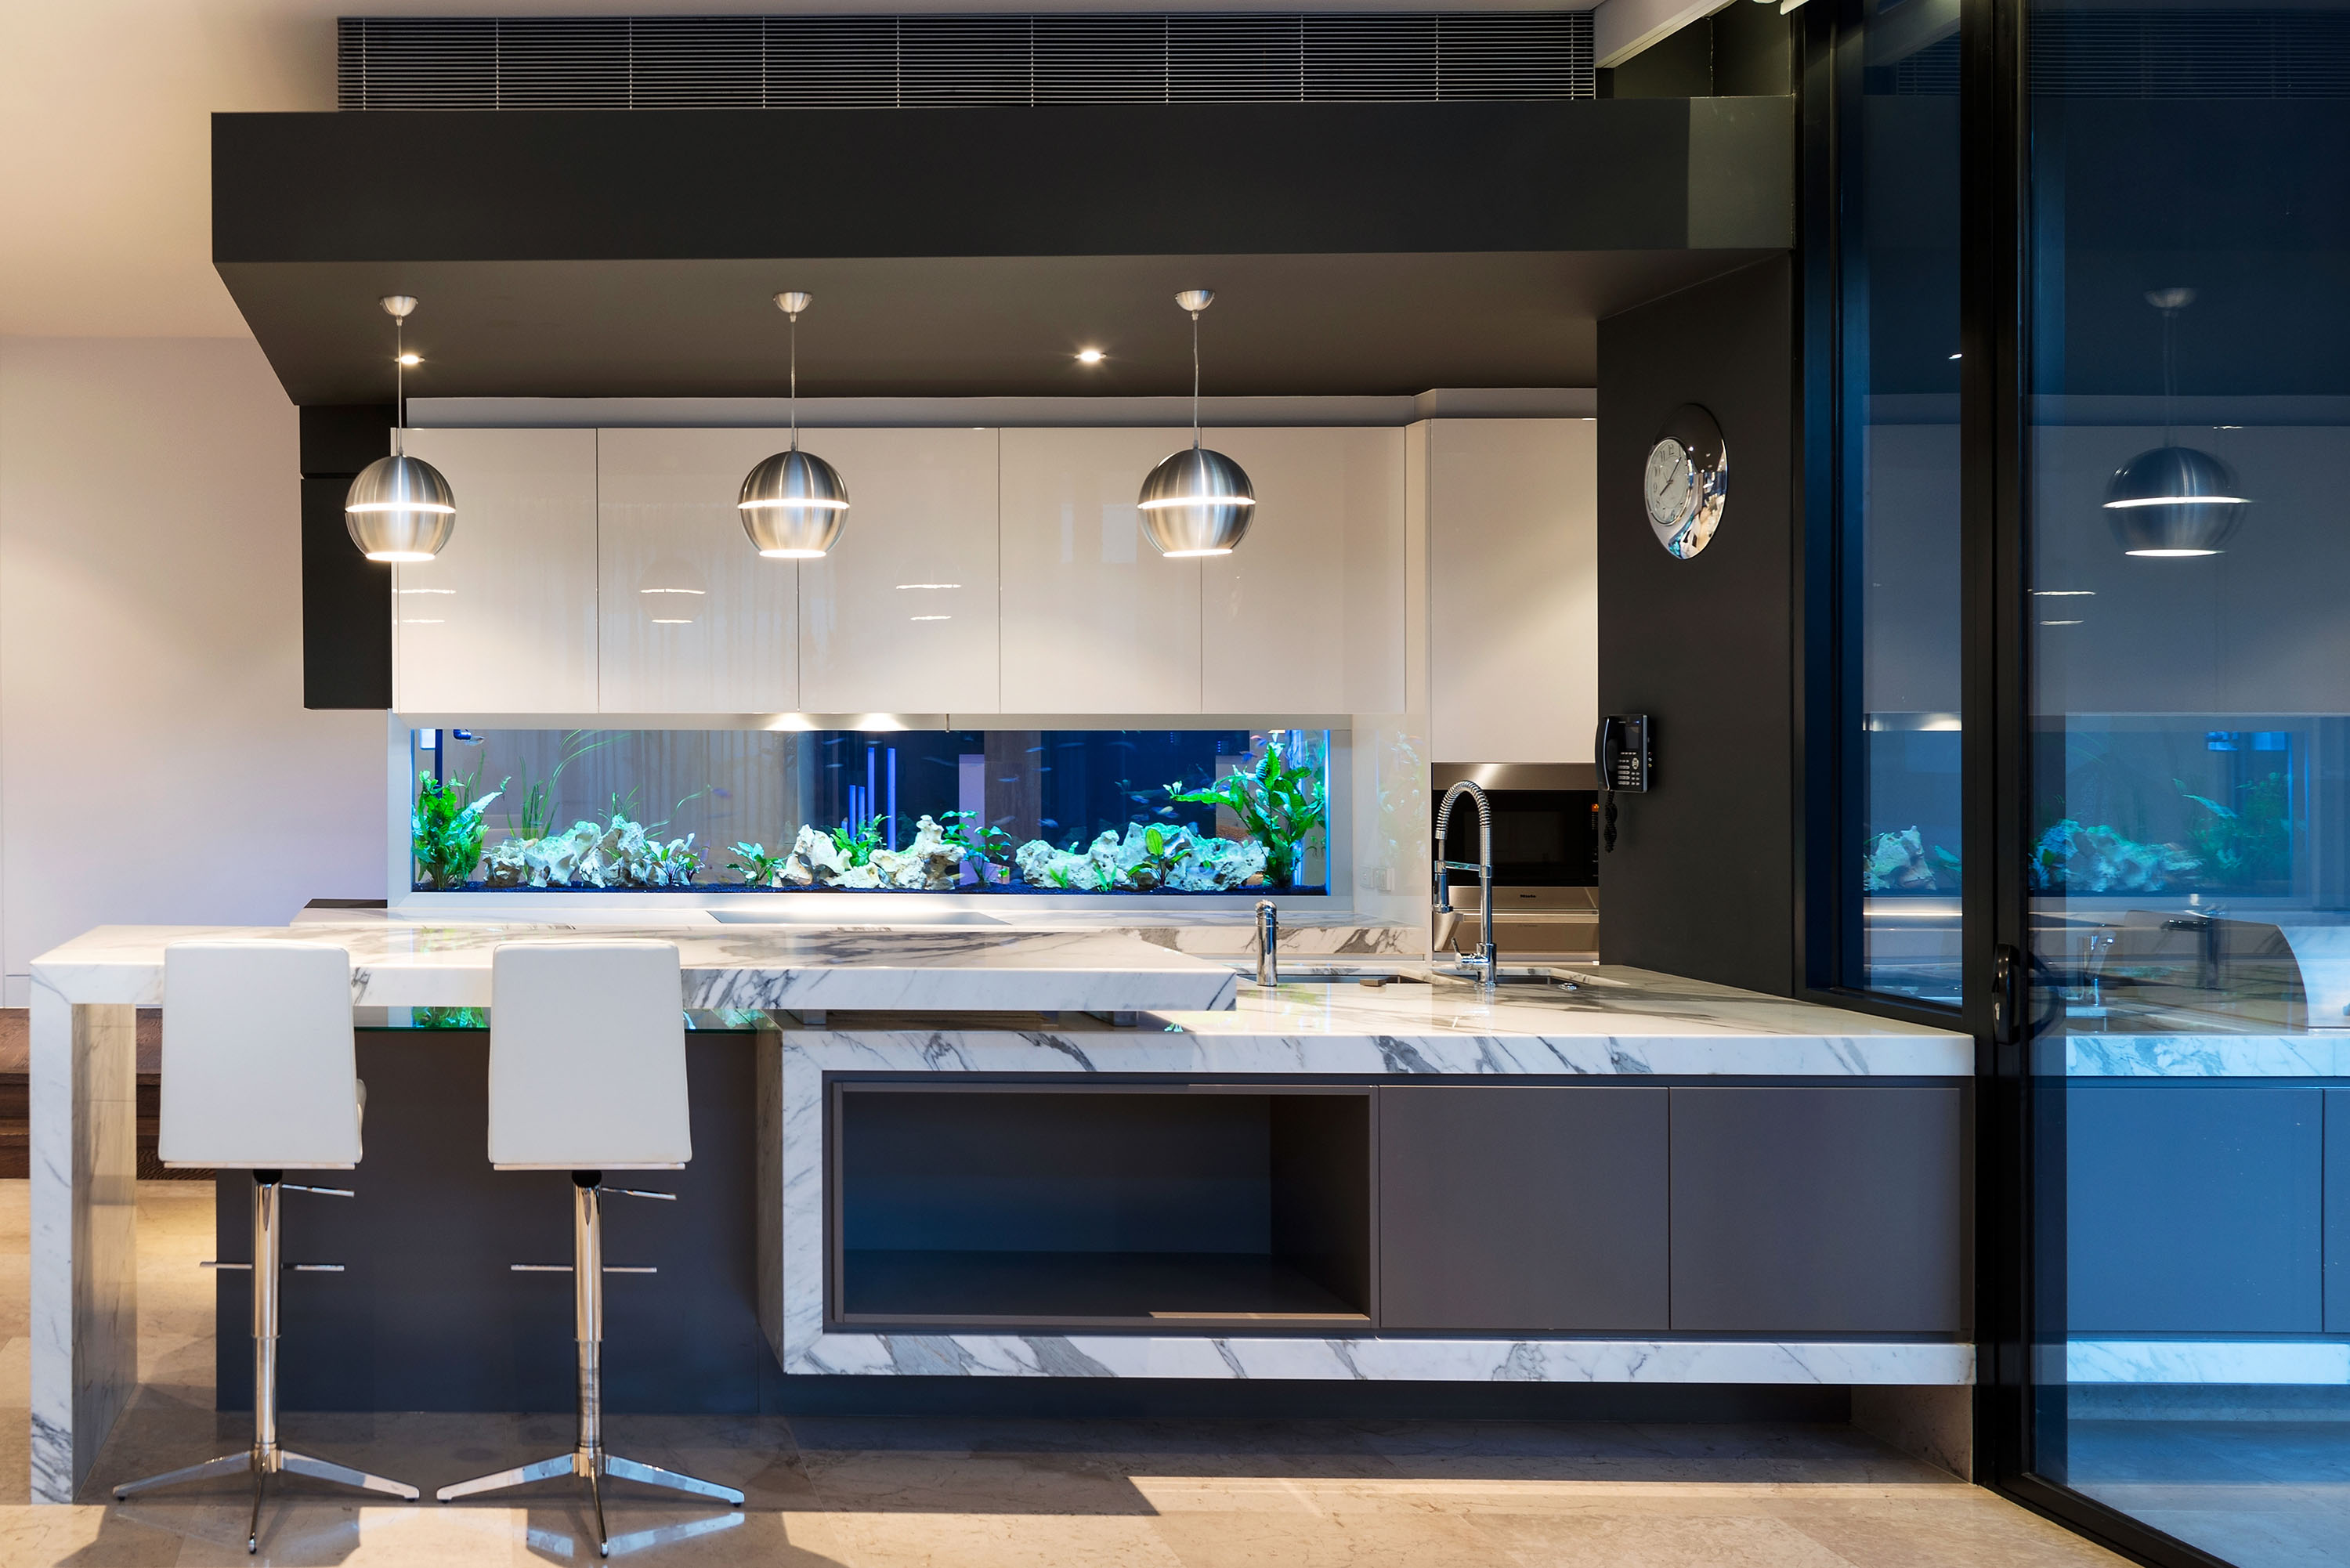 Australian Kitchen 2014 Hia Australian Kitchen Bathroom Awards The Kitchen And